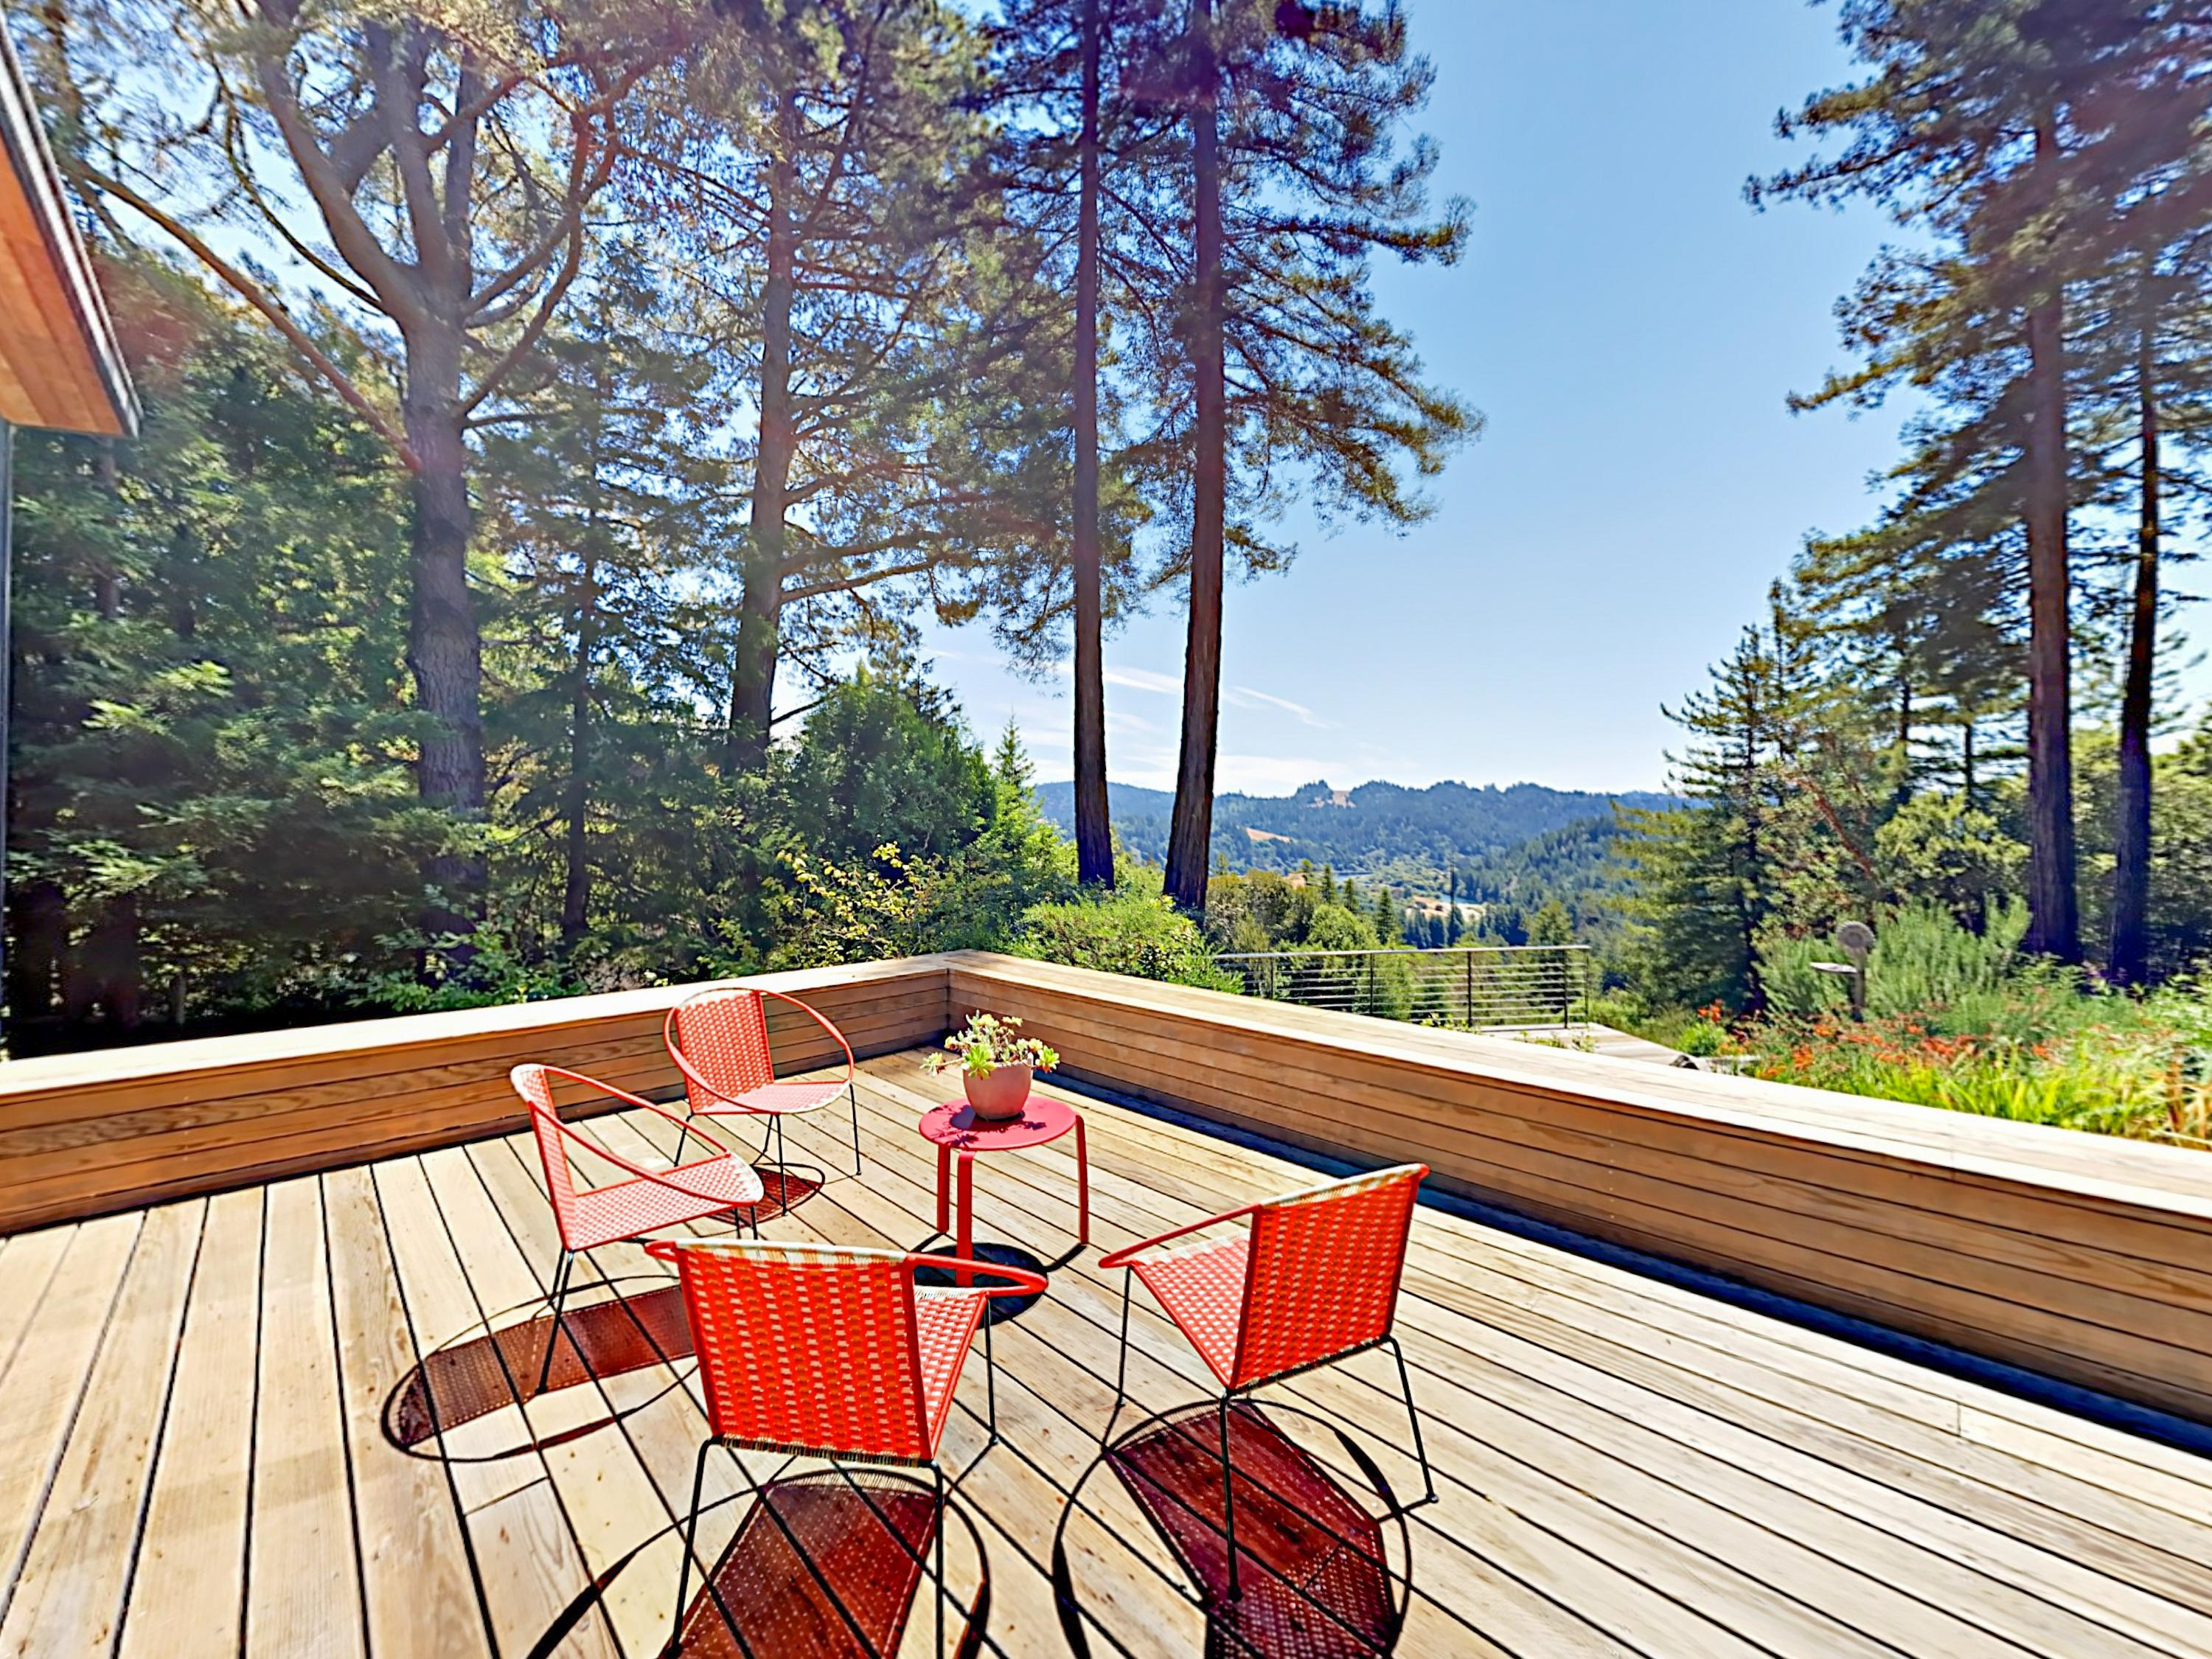 Welcome to Cazadero! This stunning home is professionally managed by TurnKey Vacation Rentals.